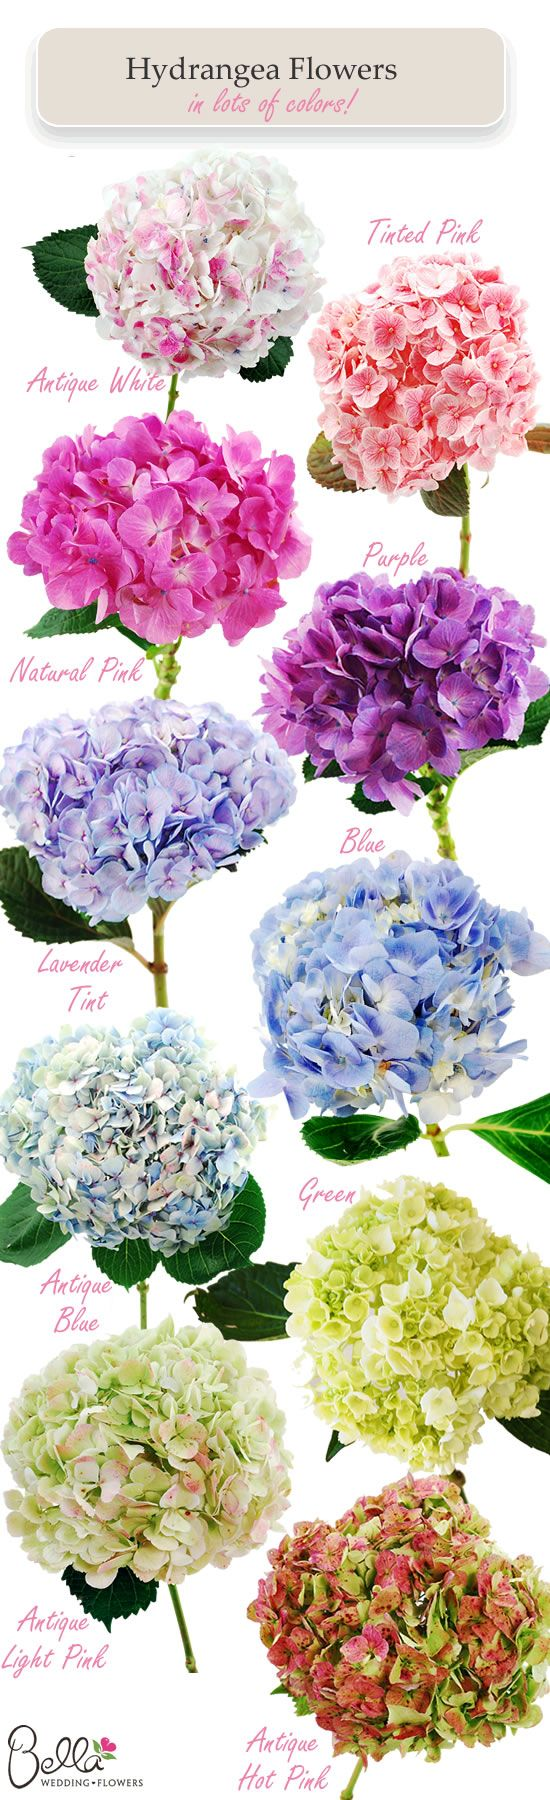 Hydrangea colors... Someone across town has a dark purple one and it is gorgeous! I would love one of those for our yard.